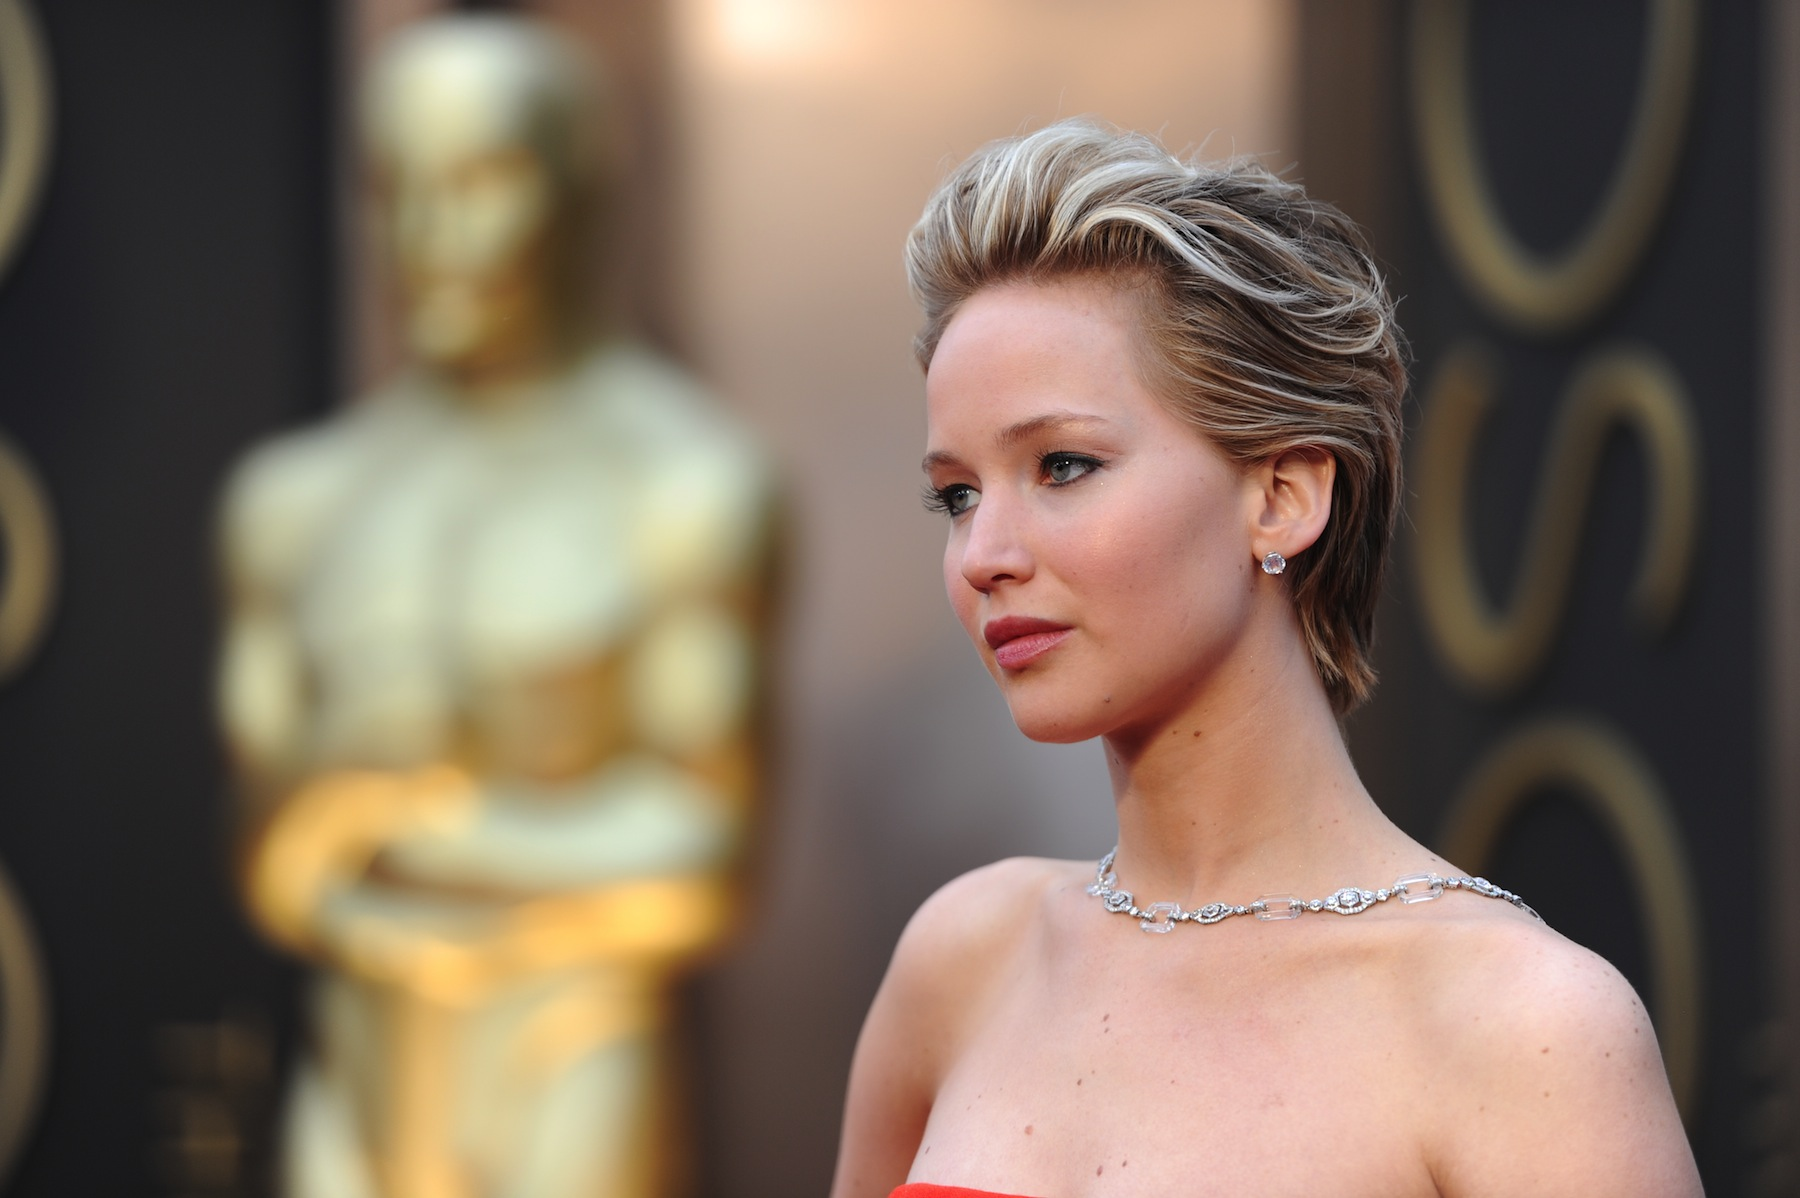 Jennifer Lawrence at the Oscars on March 2, 2014 in Hollywood, Calif.